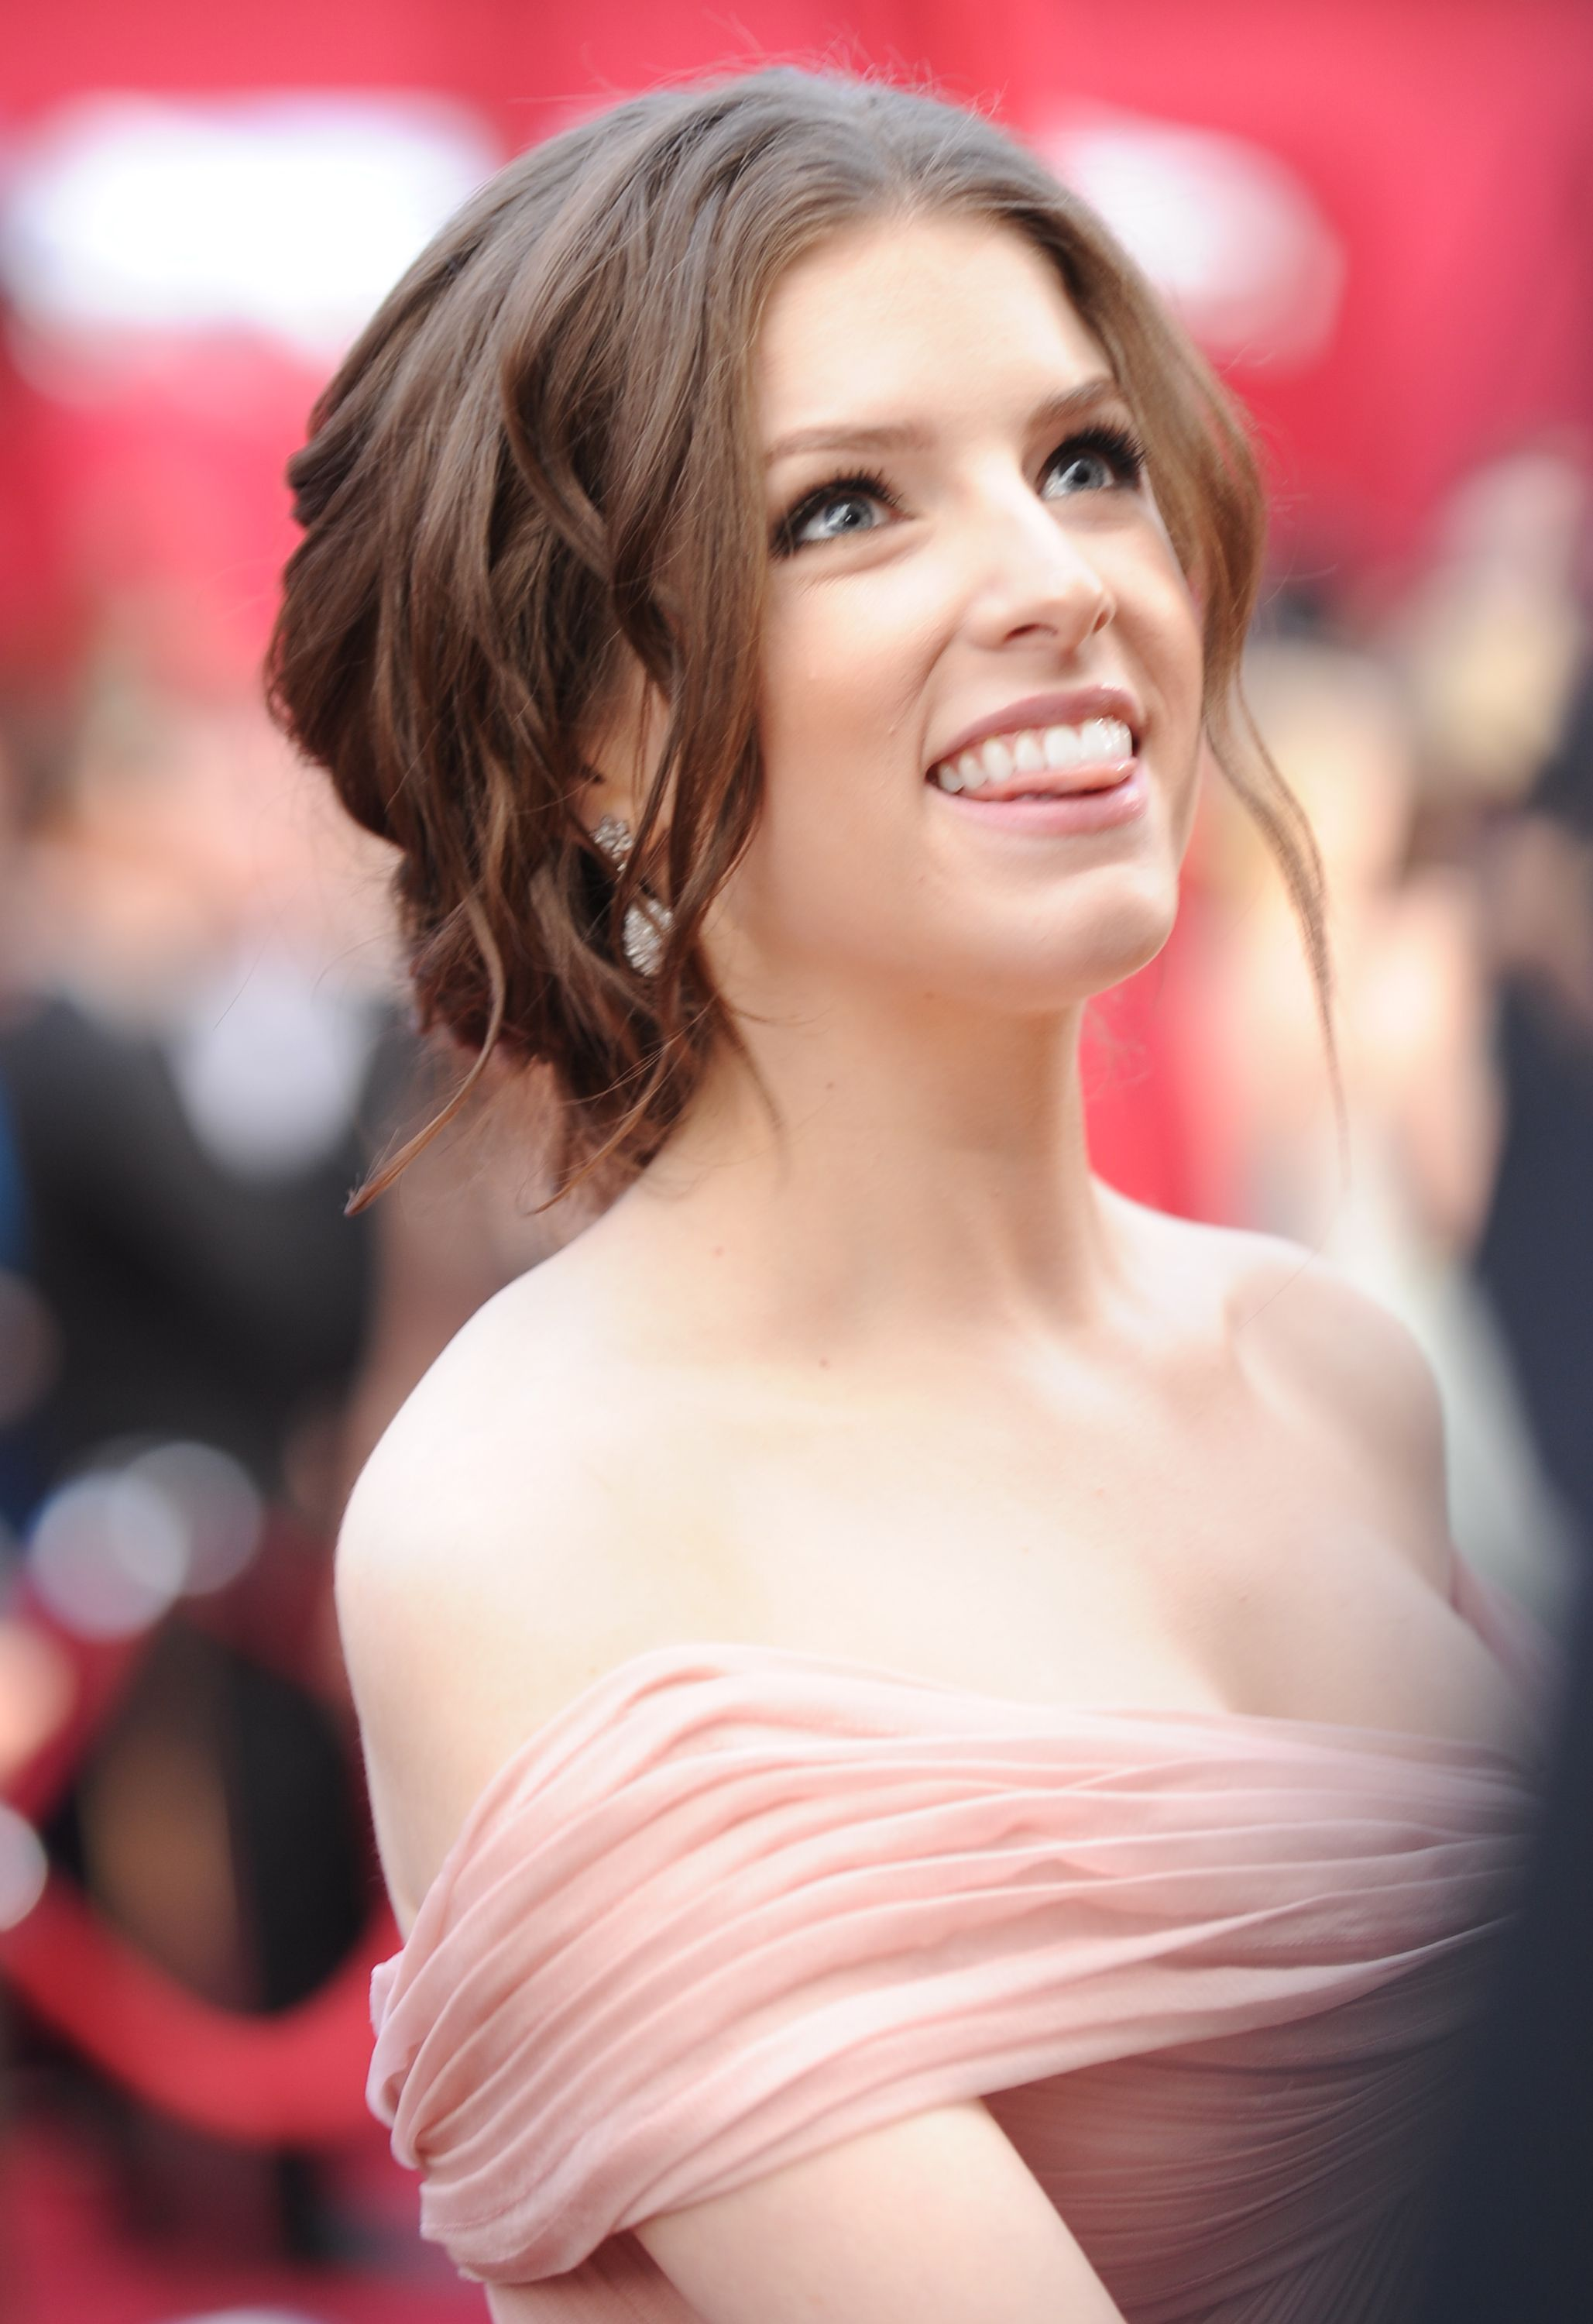 82nd Annual Academy Awards - Anna Kendrick